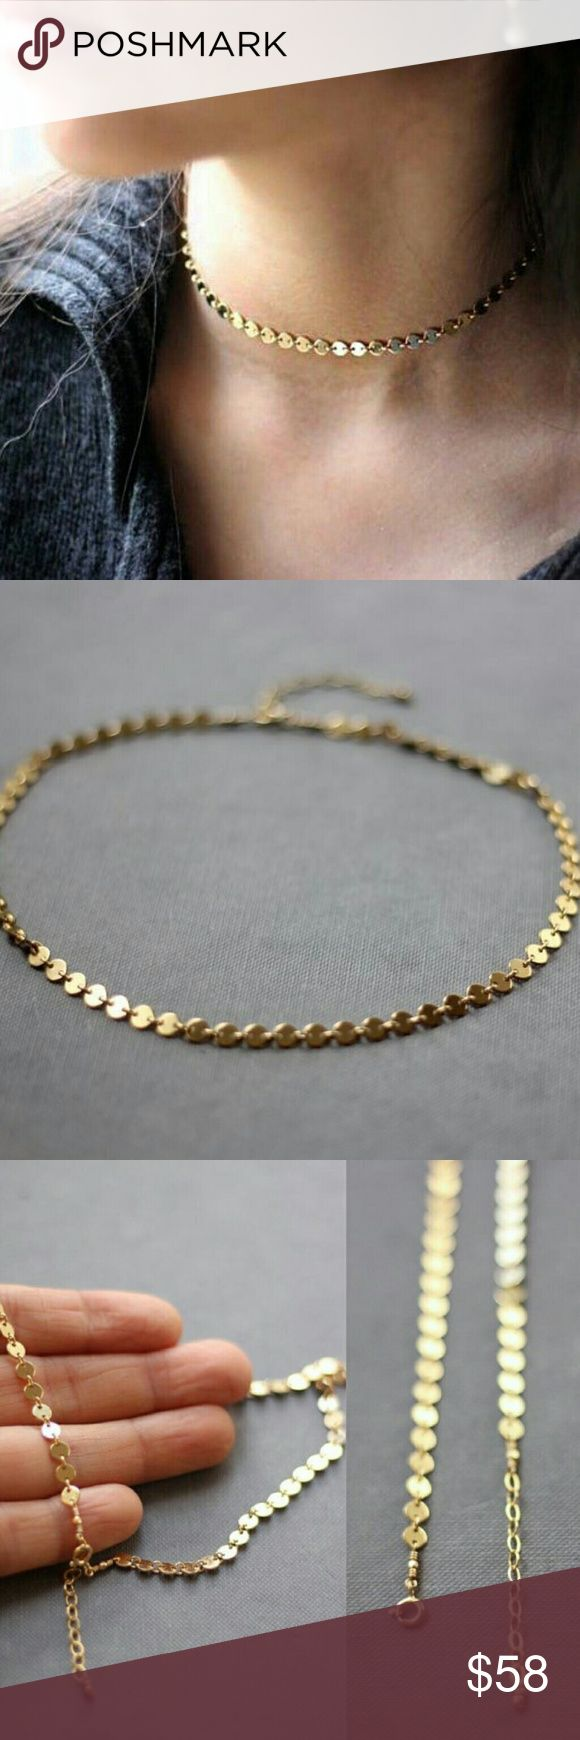 "High Quality 18K Gold Choker Necklace, Disc Choker High quality made entirely of 18k gold filled tiny discs choker, not plated. Hence it will not tarnish. 4mm discs linked together. Delicate, beautiful yet very sturdy. When choosing gold choker, i need it strong. Perfect layering necklace too.  This adjustable choker has a 1.5"" extension chain so you can adjust for a perfect fit. Boho and trendy tattoo choker, coin choker Gift for her Price is FIRM. It is good quality hamdmade Jewelry…"